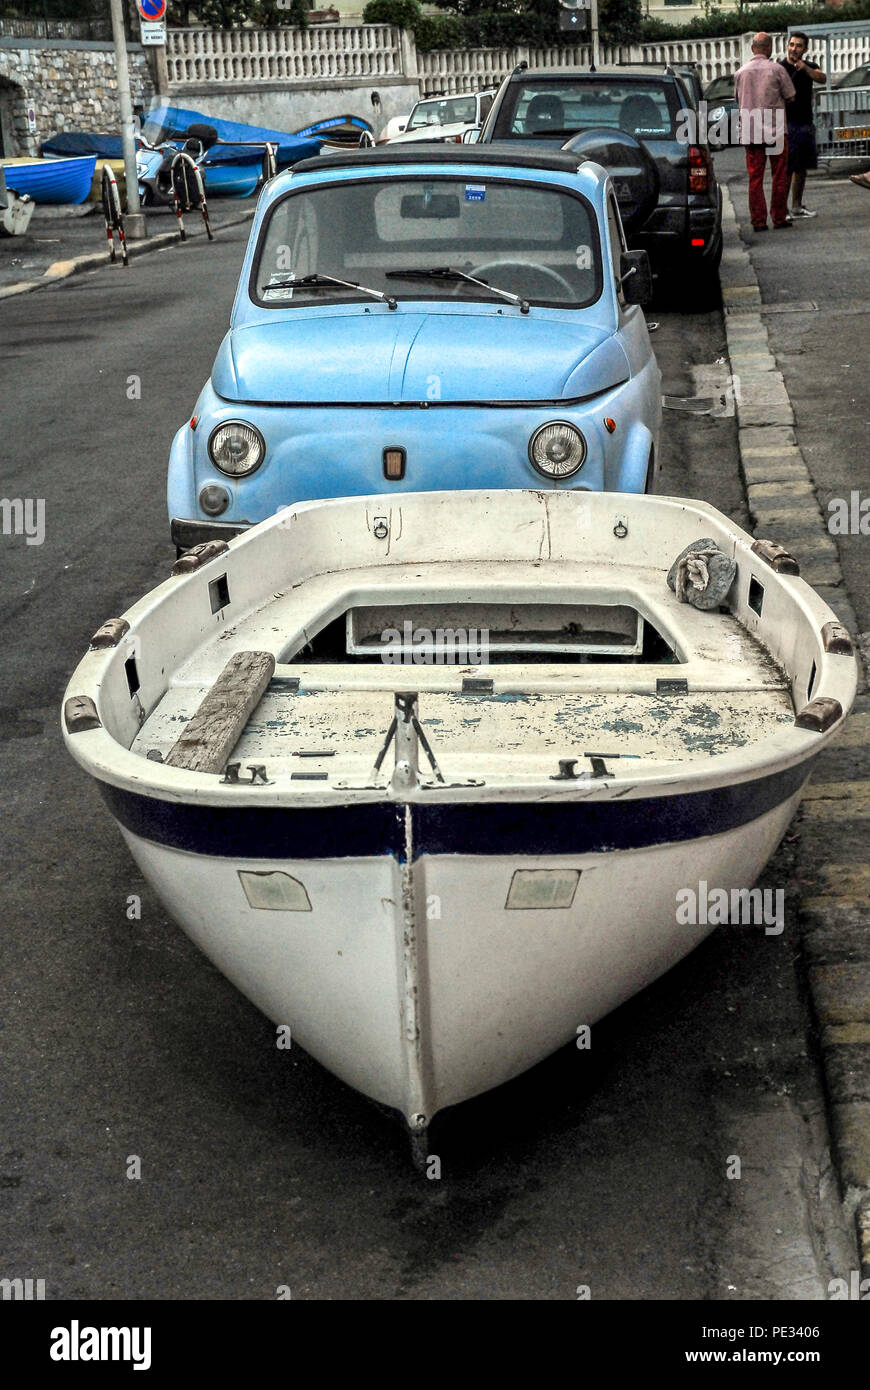 ITALY-SEPTEMBER 12: parking in the streets of Genoa,Italy,on September 12,2008. - Stock Image